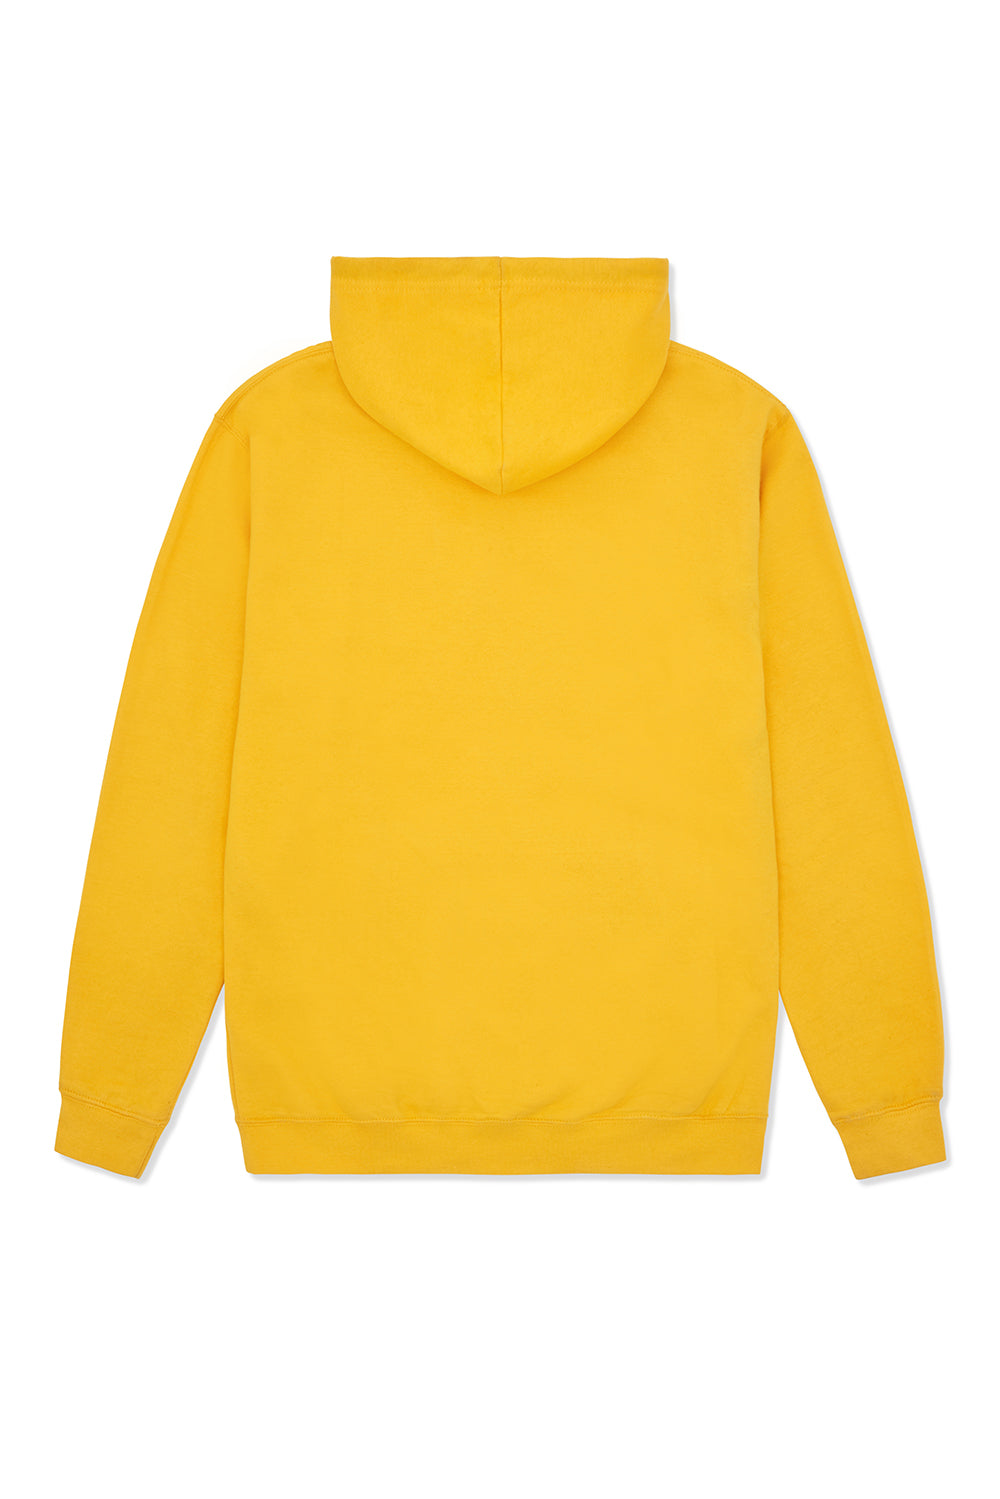 FRENZY YELLOW SWEATSHIRT | B-sidebywale